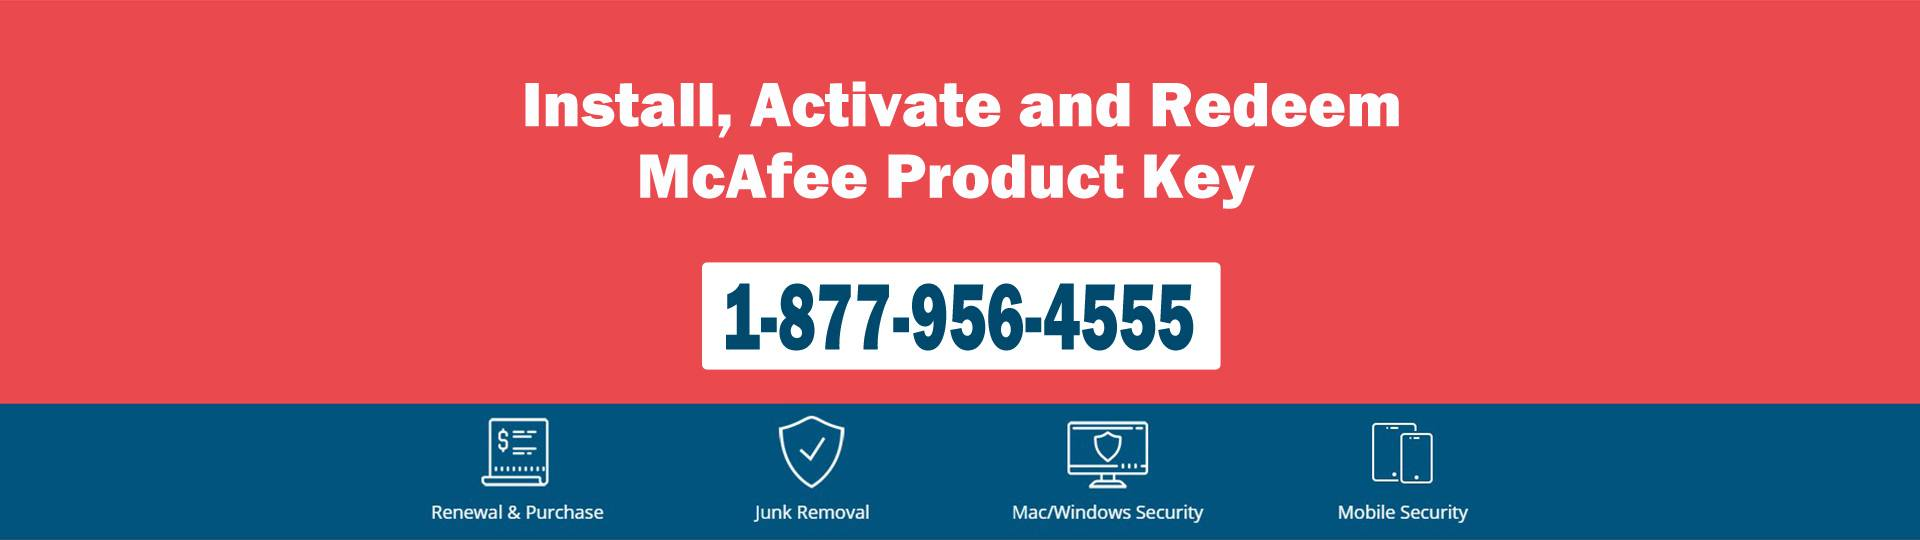 McAfee.Com/Activate Redeem McAfee Retail Card Product Key